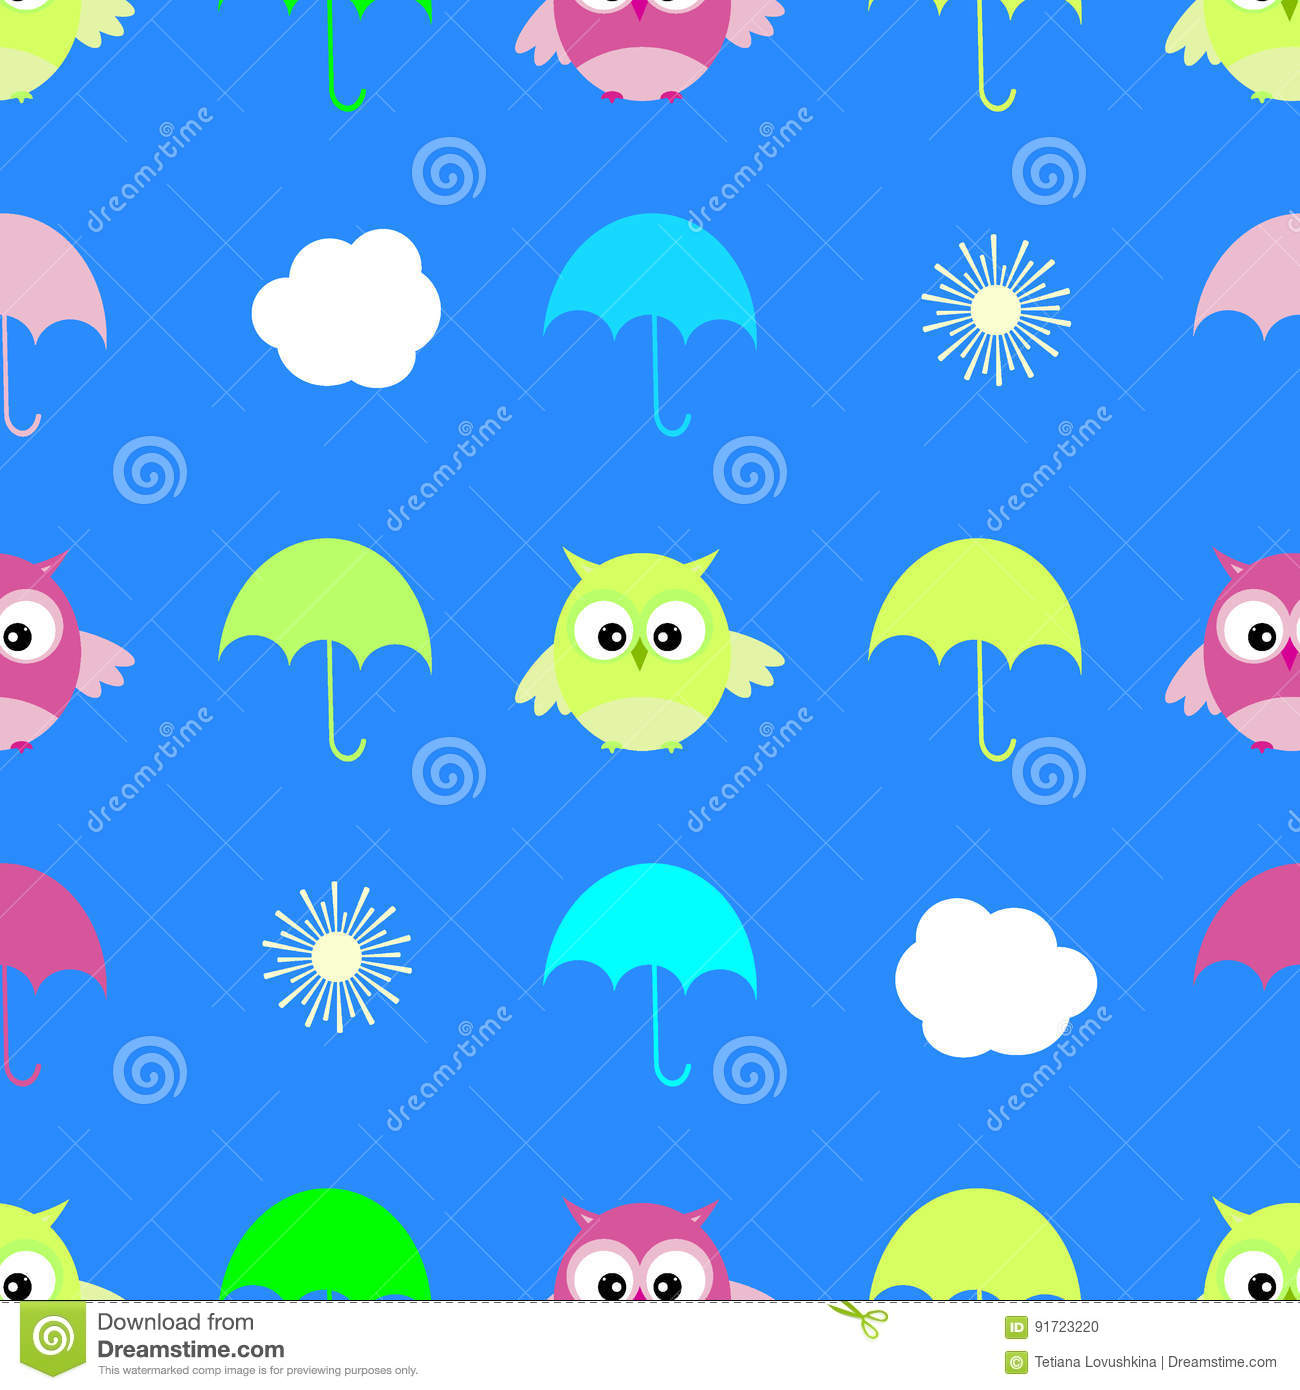 image about Umbrella Pattern Printable Free referred to as Practice inventory vector. Instance of summary, crimson - 91723220